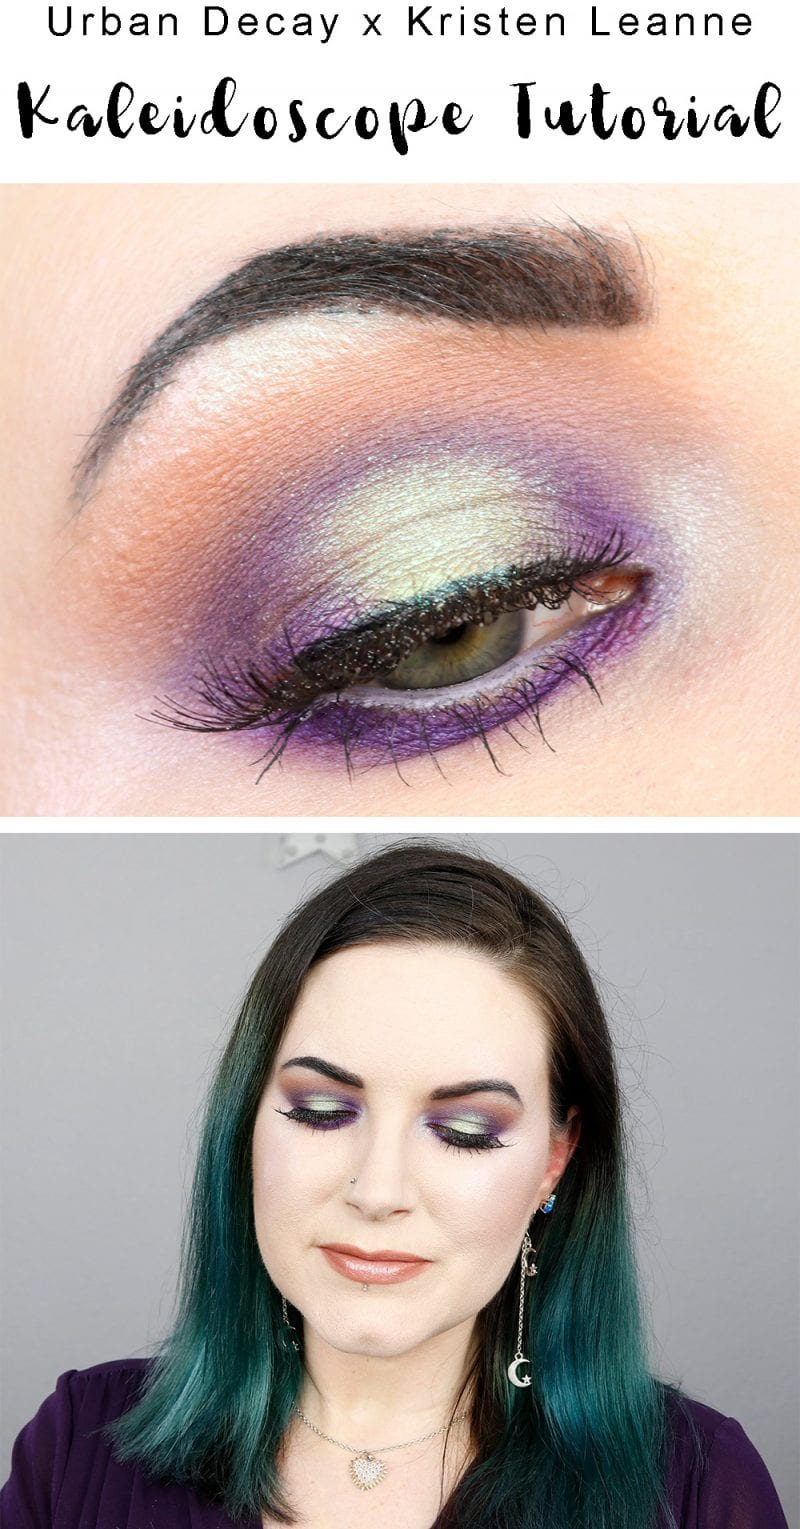 Urban Decay Kaleidoscope Tutorial - Get inspired with my Kaleidoscope palette collaboration tutorial with Blushing Noir!